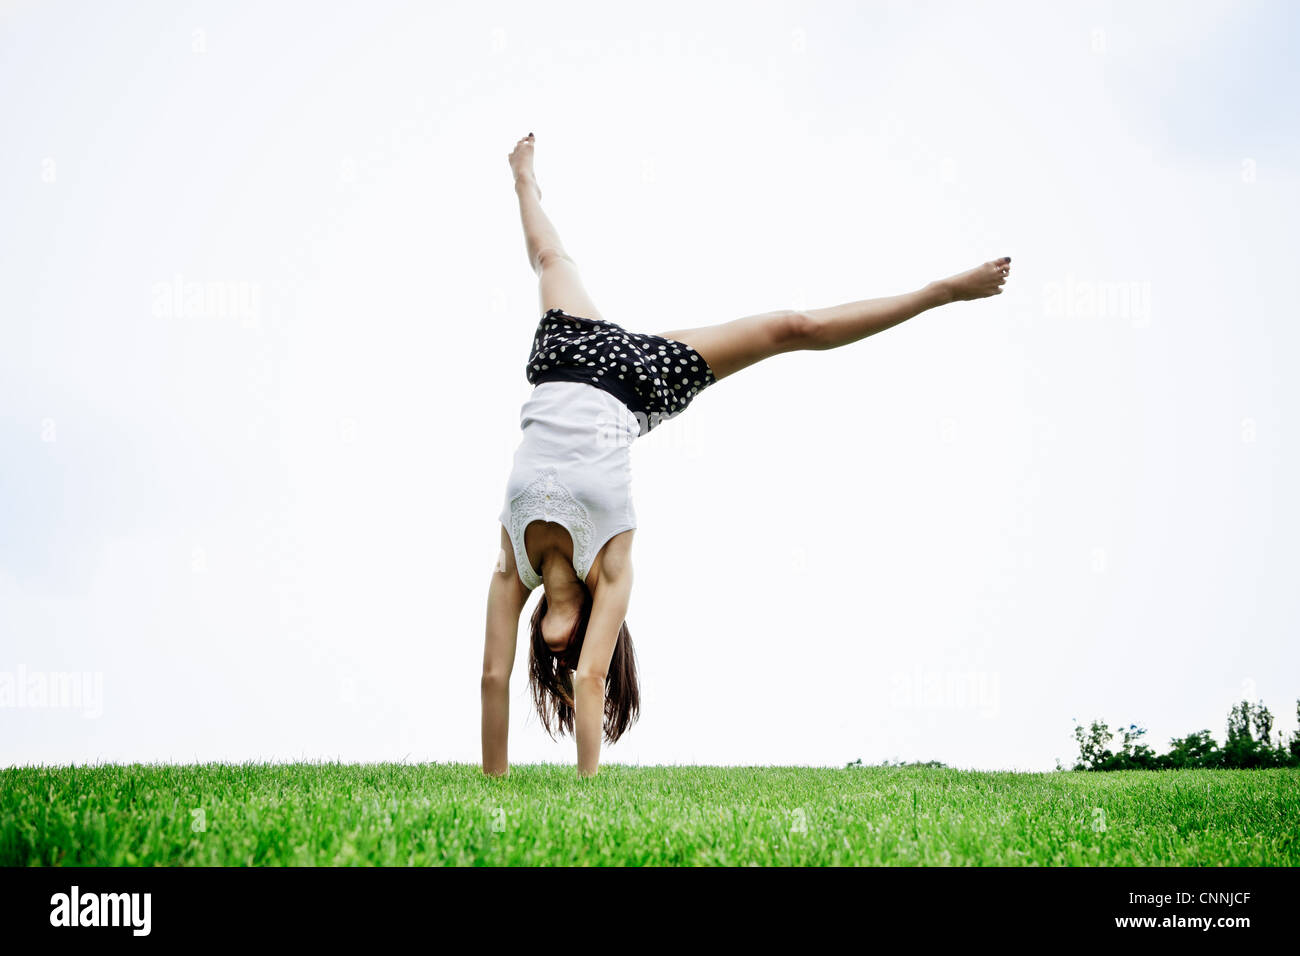 Woman doing cartwheel outdoors - Stock Image